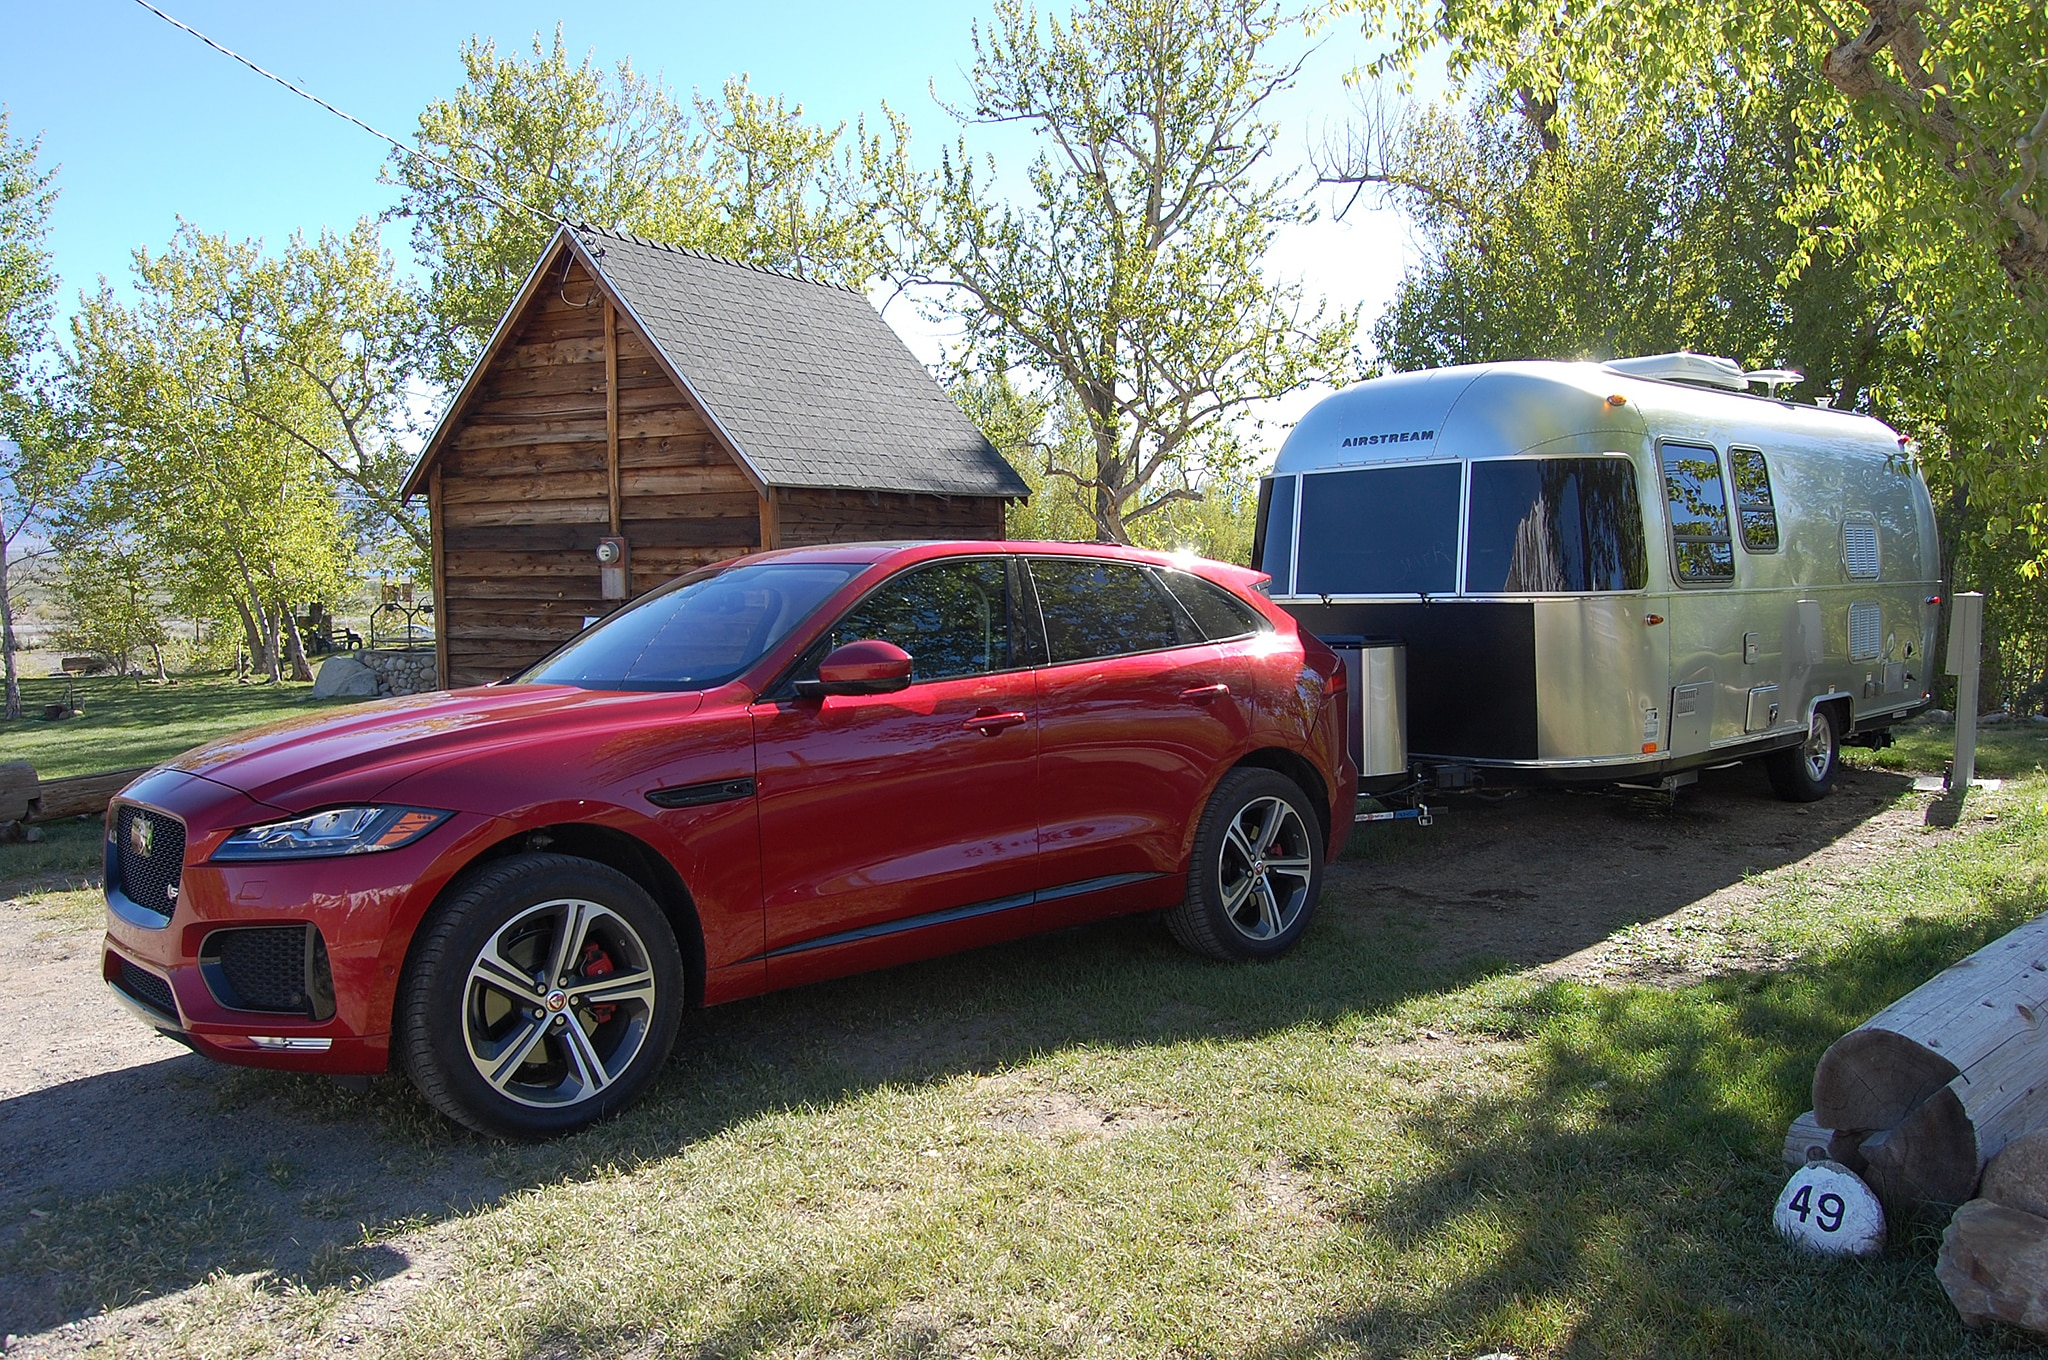 2017 Jaguar F Pace Long Term Towing Airstream At Campsite